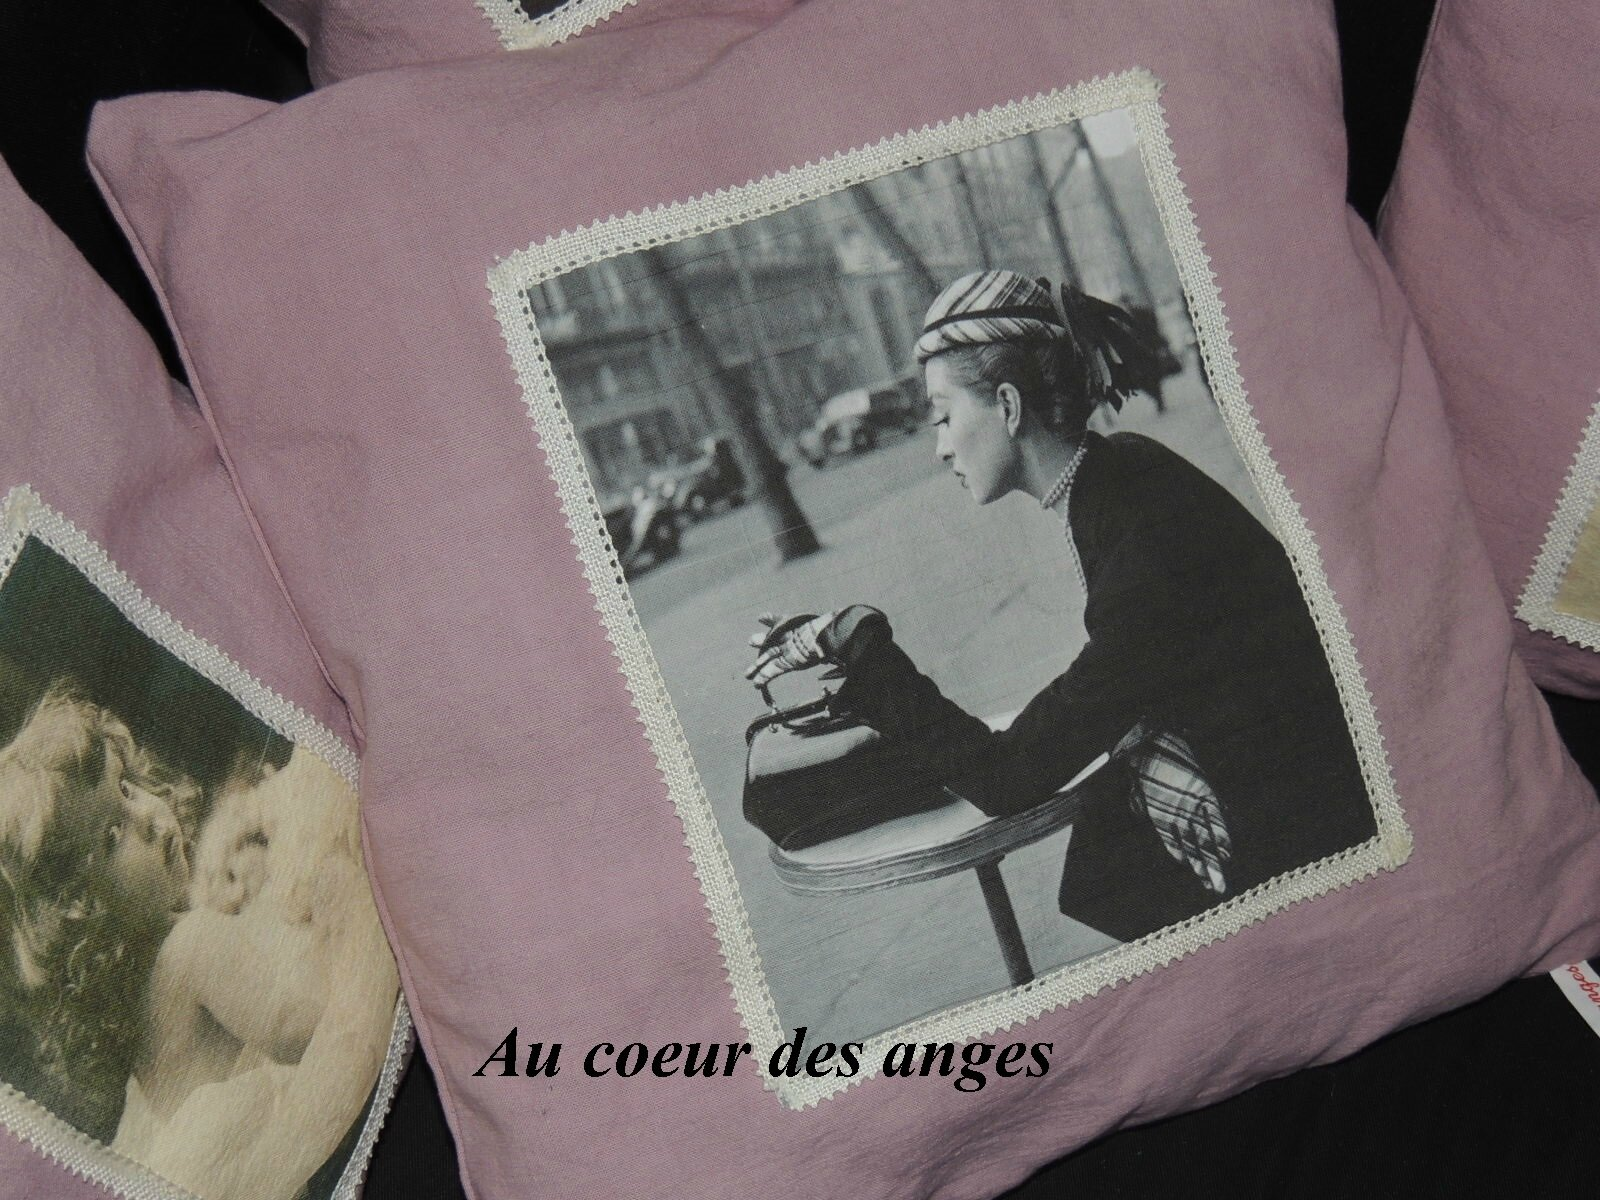 coussin vieux rose linge teint photo de cr ations au coeur des anges. Black Bedroom Furniture Sets. Home Design Ideas